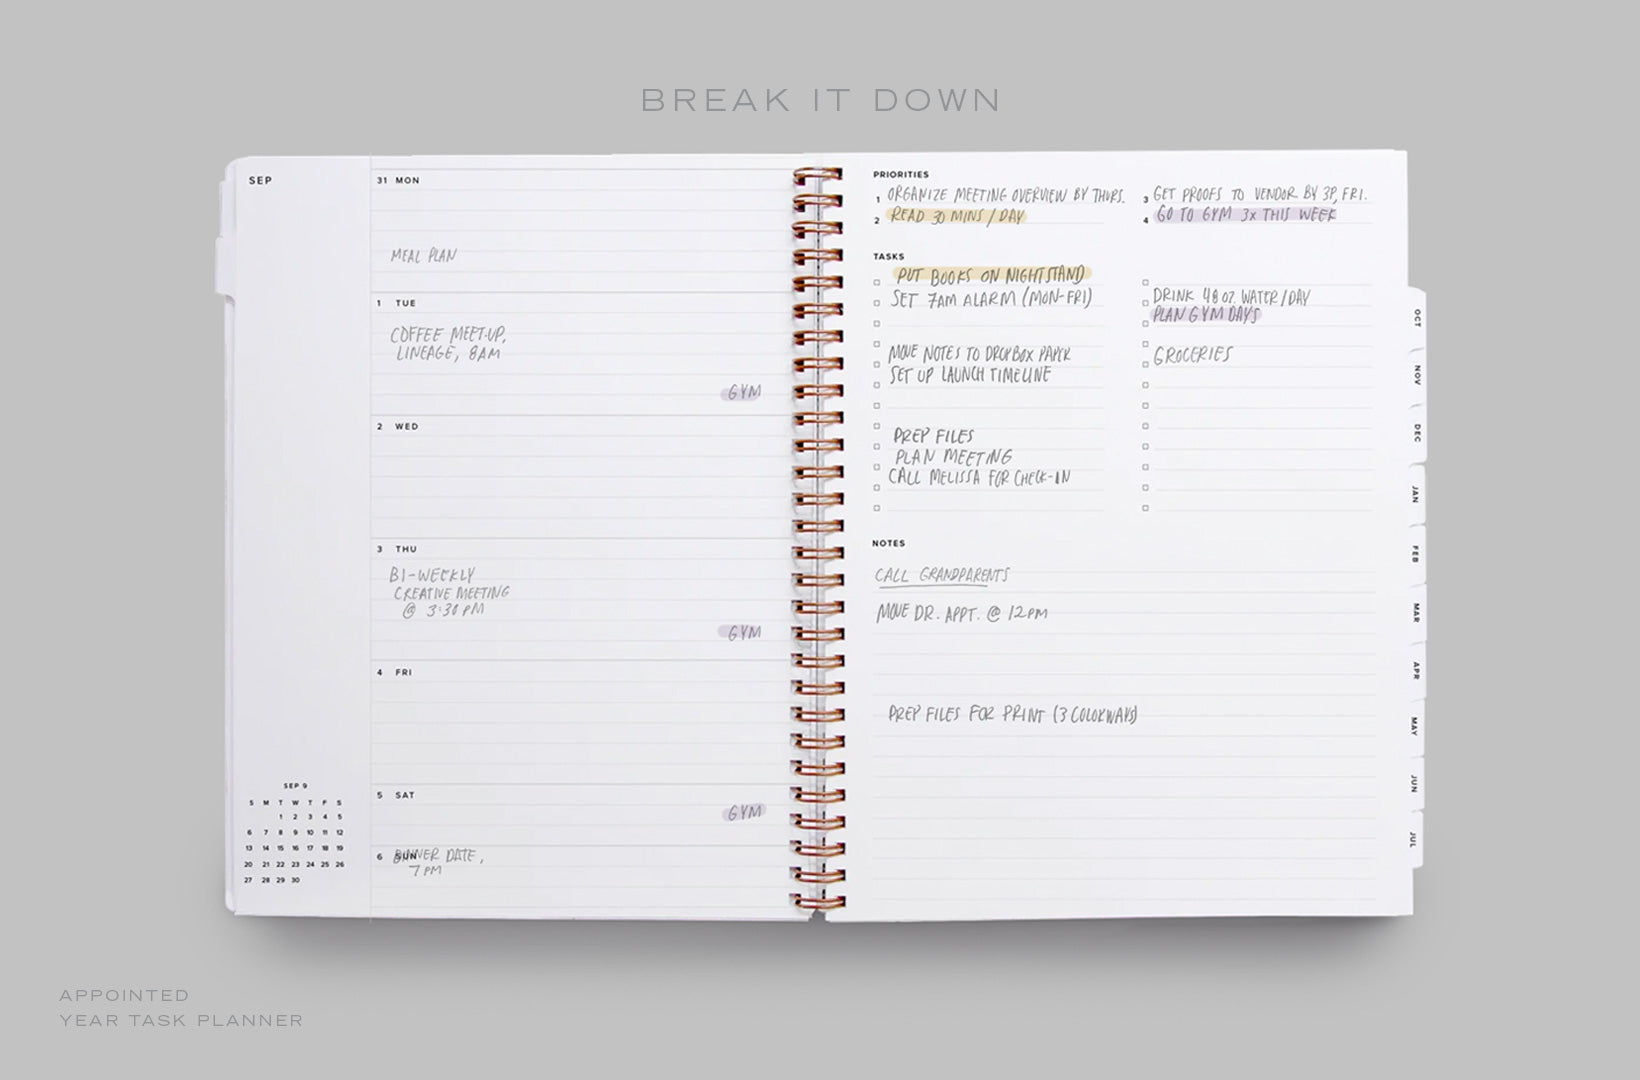 A Year Task Planner lies open to the weekly spread, with priorities, tasks, and schedule filled in